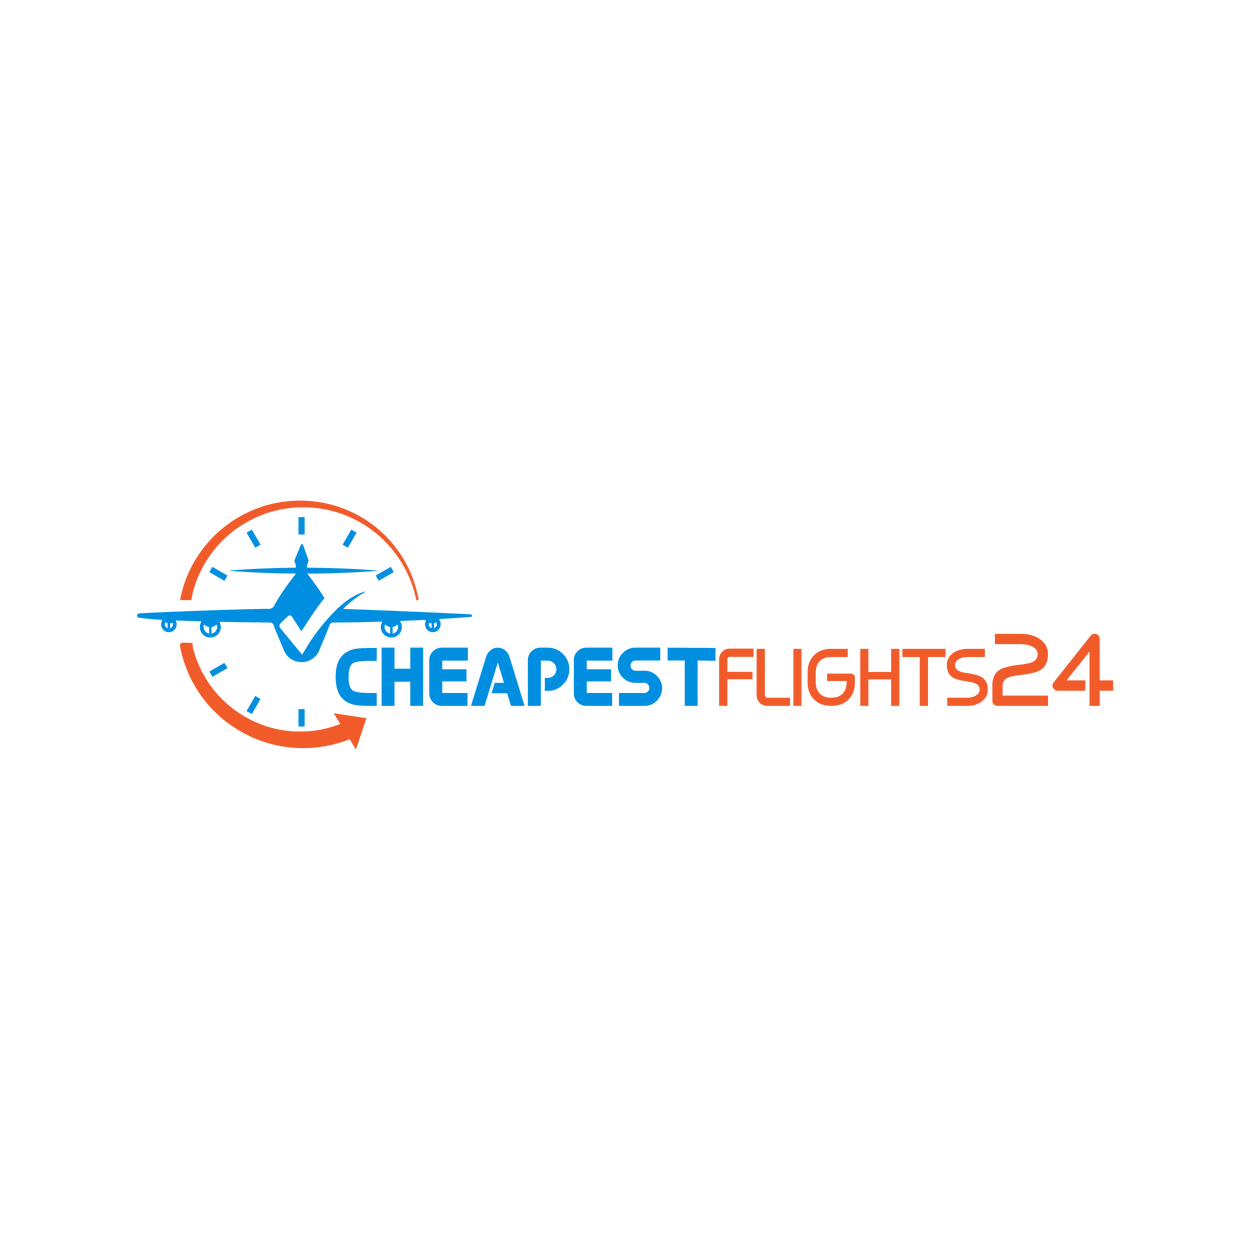 Cheap flights| Fly Cheapest Flights| Book Airfare & Flight Tickets Deals